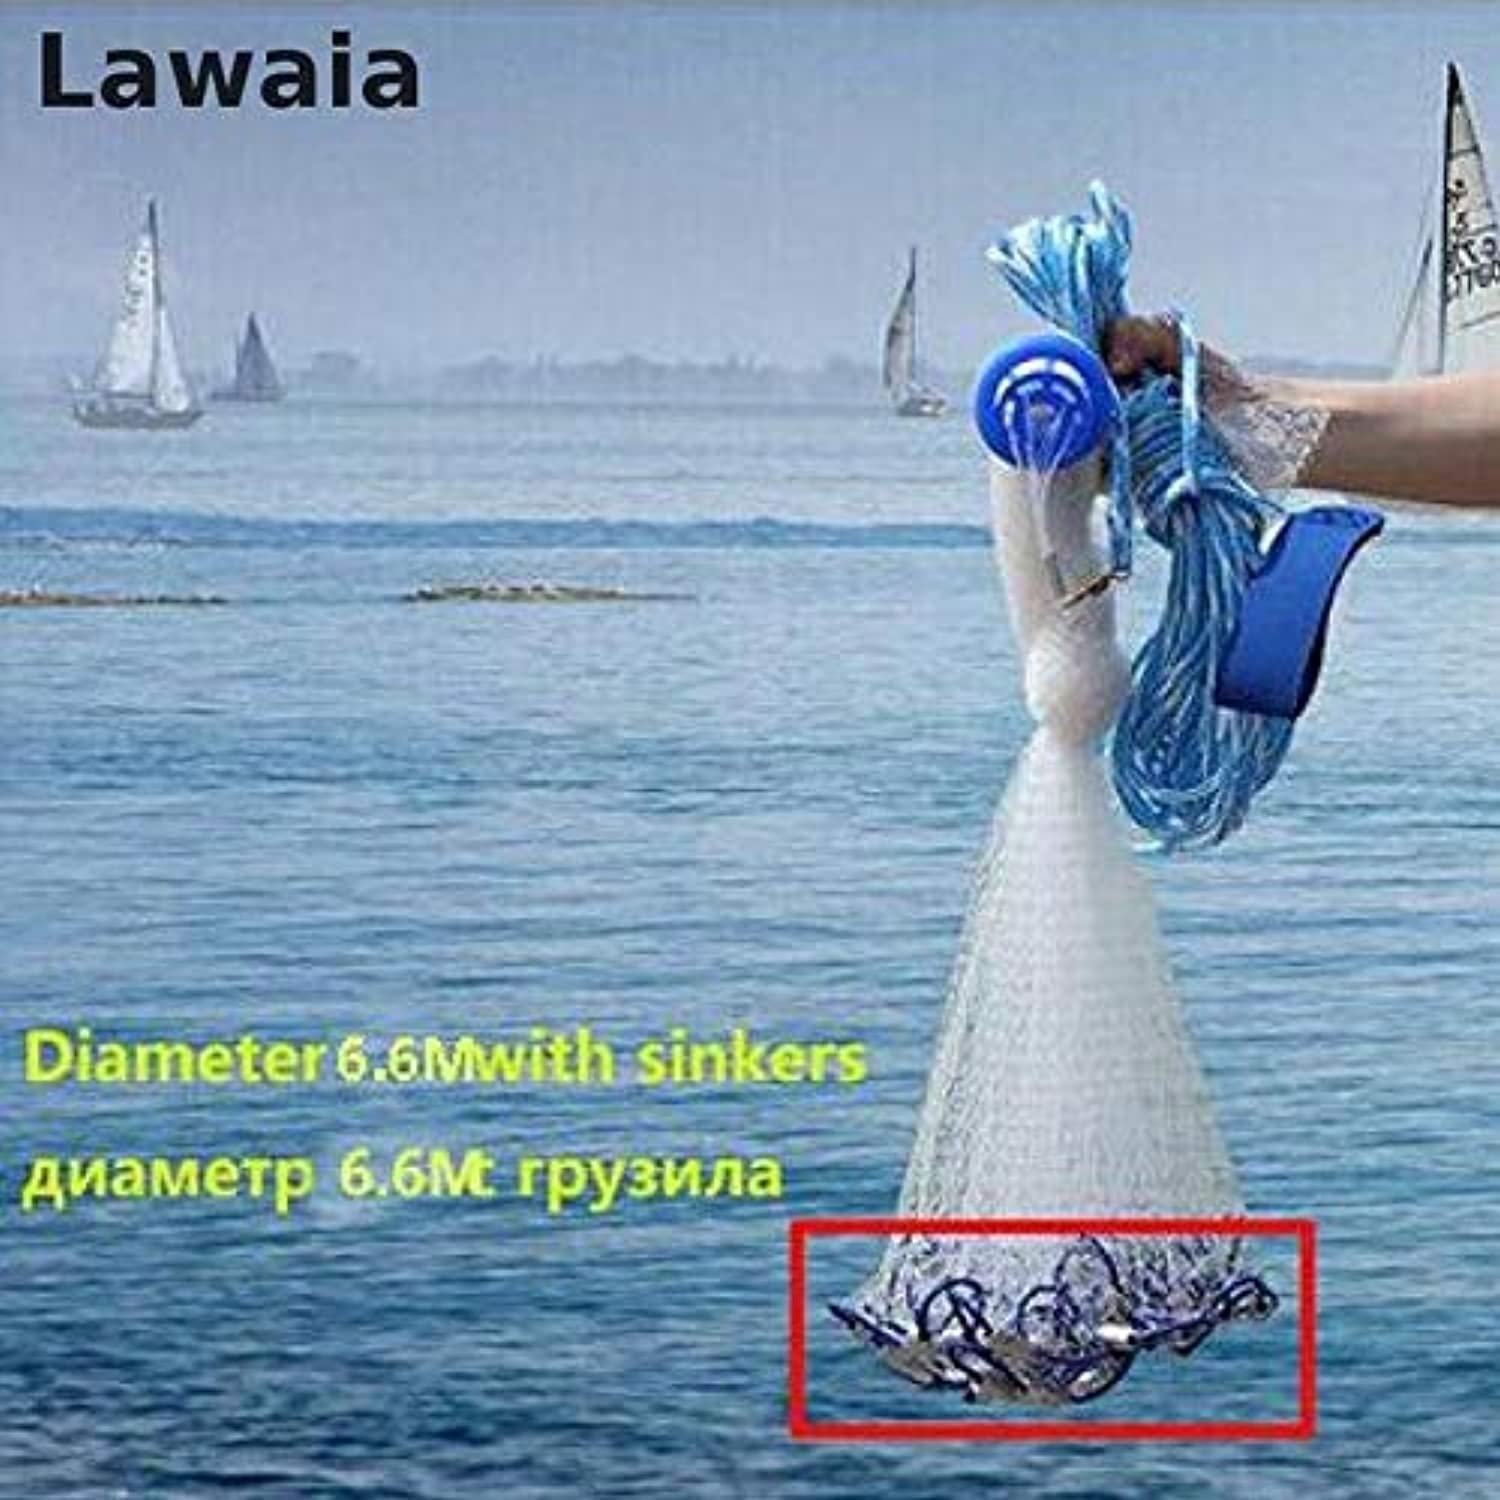 Lawaia Black cast net American Style cast net Hand Throw Fishing net with Sinker Outdoor Sport Fishing Network Tool 660 Fishing net, Russian Federation